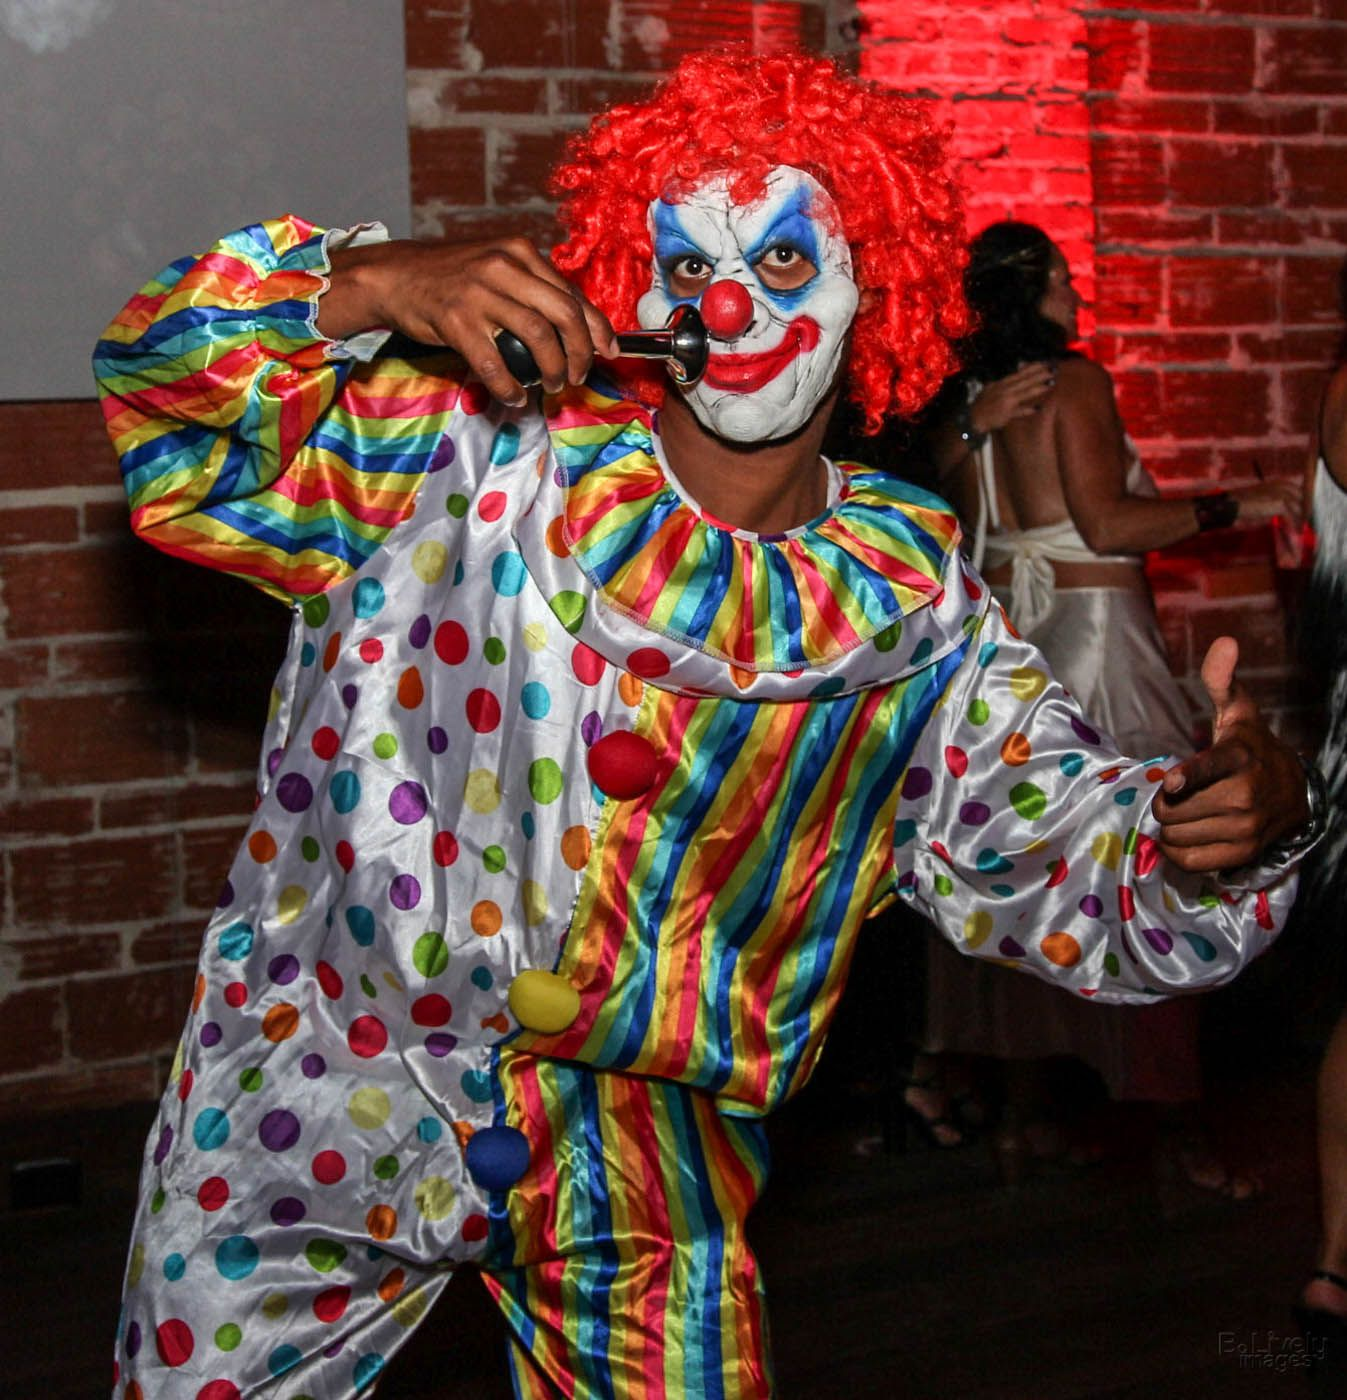 2016-10-21-novaween-10-at-nova-535-in-dtsp_blivelyimages_party-photos-20